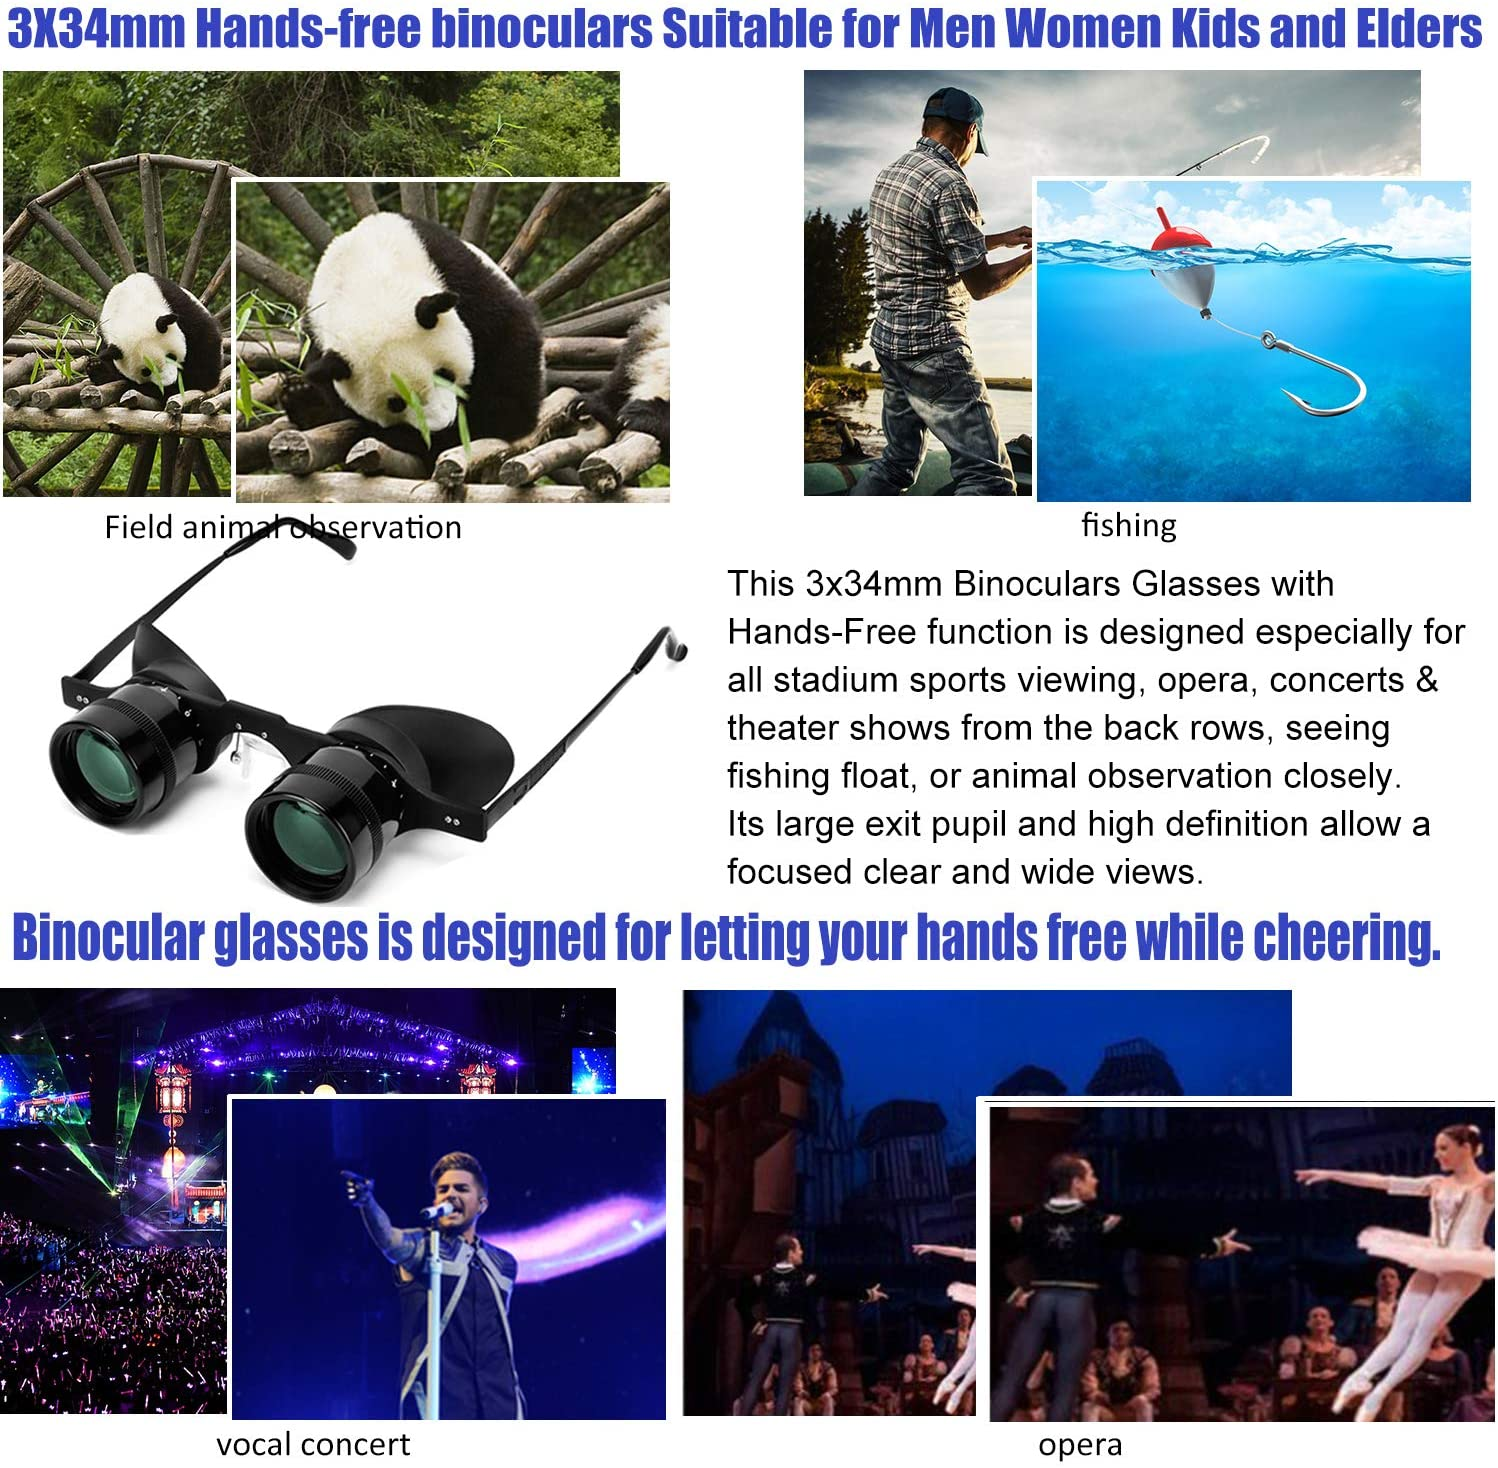 Professional Hands-Free Binocular Glasses for Fishing Bird Watching Sports Concerts Theater Opera Sight Seeing Hands-Free Opera Glasses for Adults Kids Green Film Optics -Upgraded